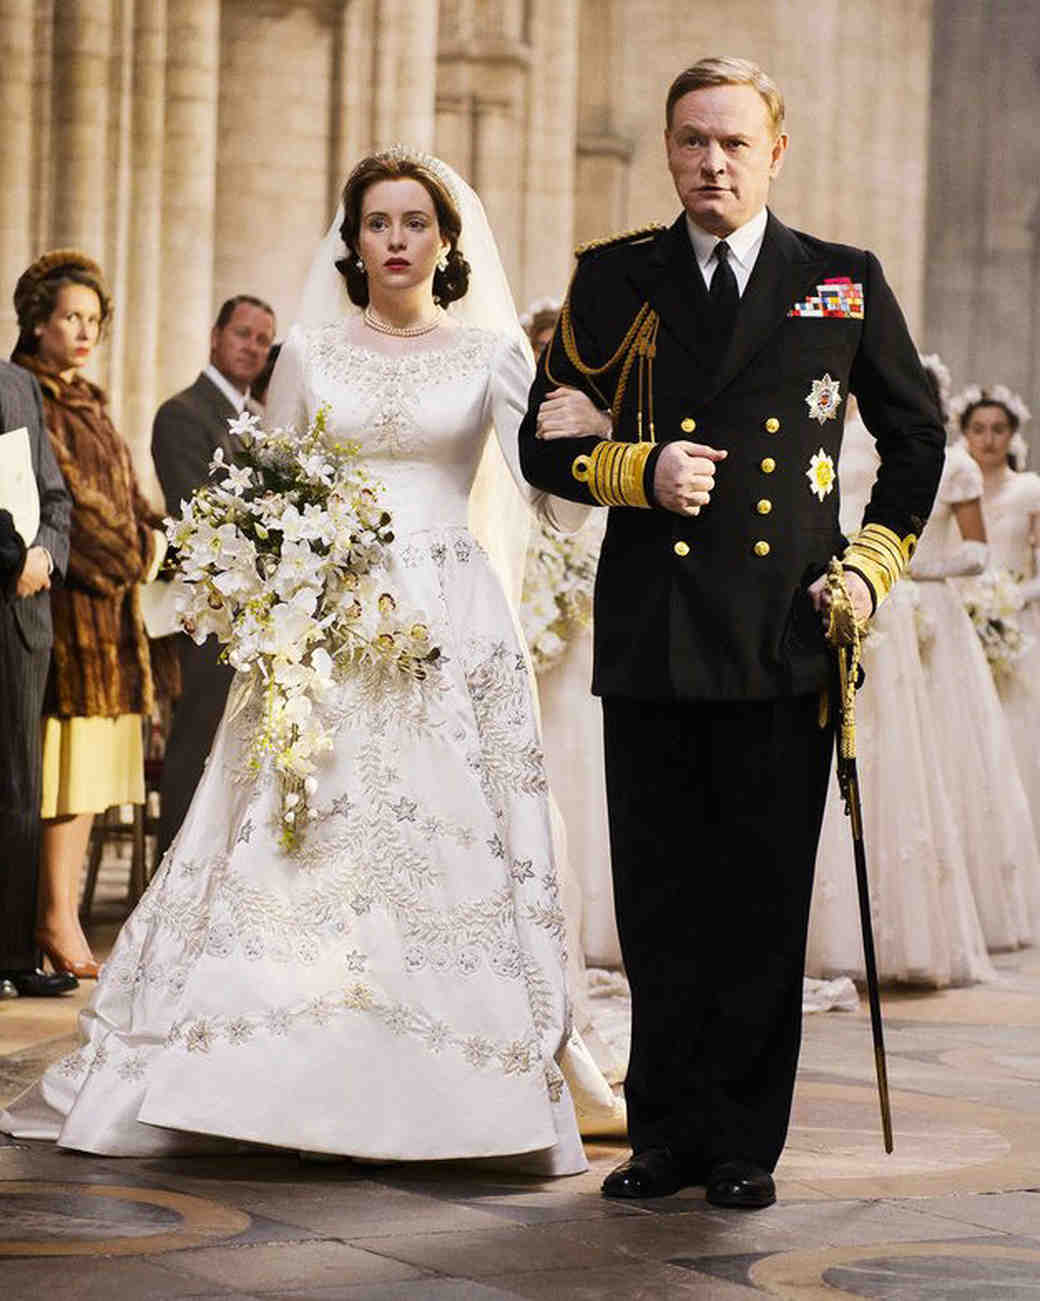 Iconic TV Wedding Dresses That Stole the Show | Martha Stewart Weddings